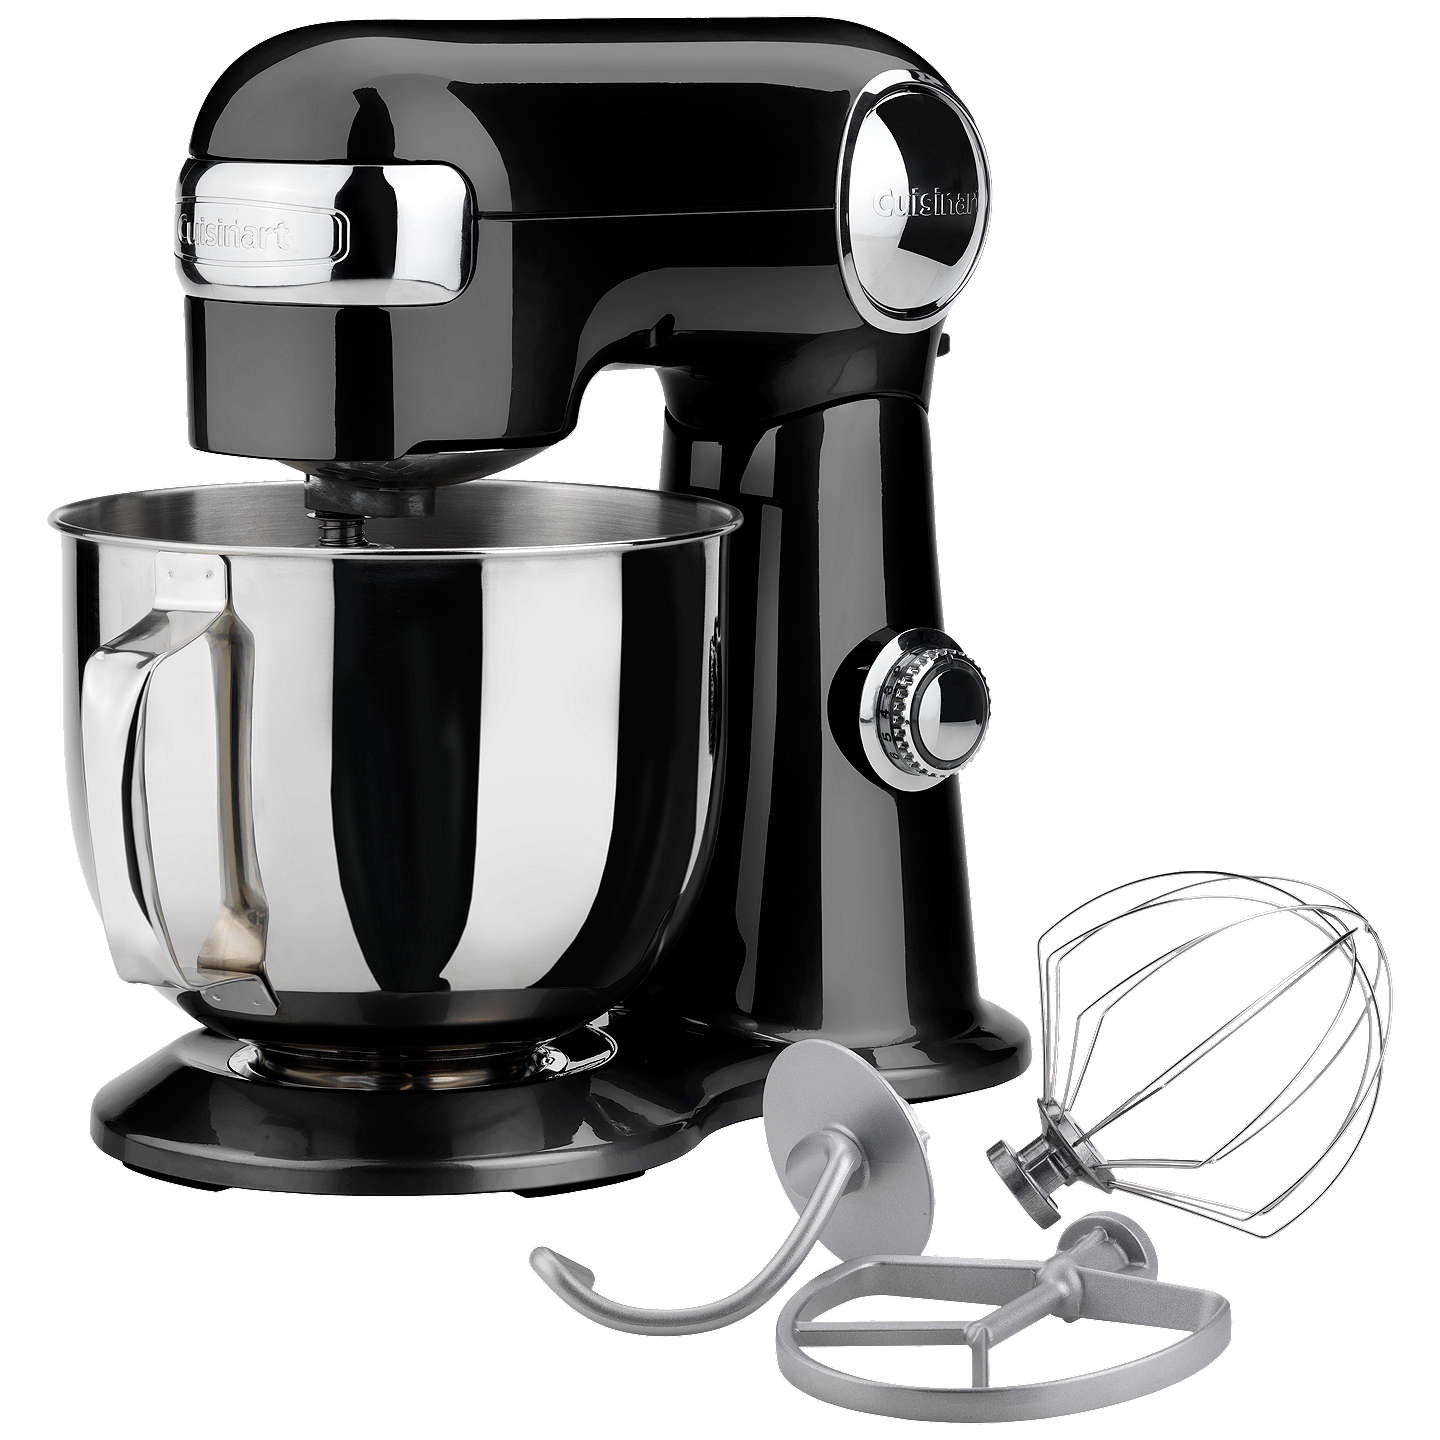 BuyCuisinart SM50BU Precision 5.2L Stand Mixer, Black Online at johnlewis.com